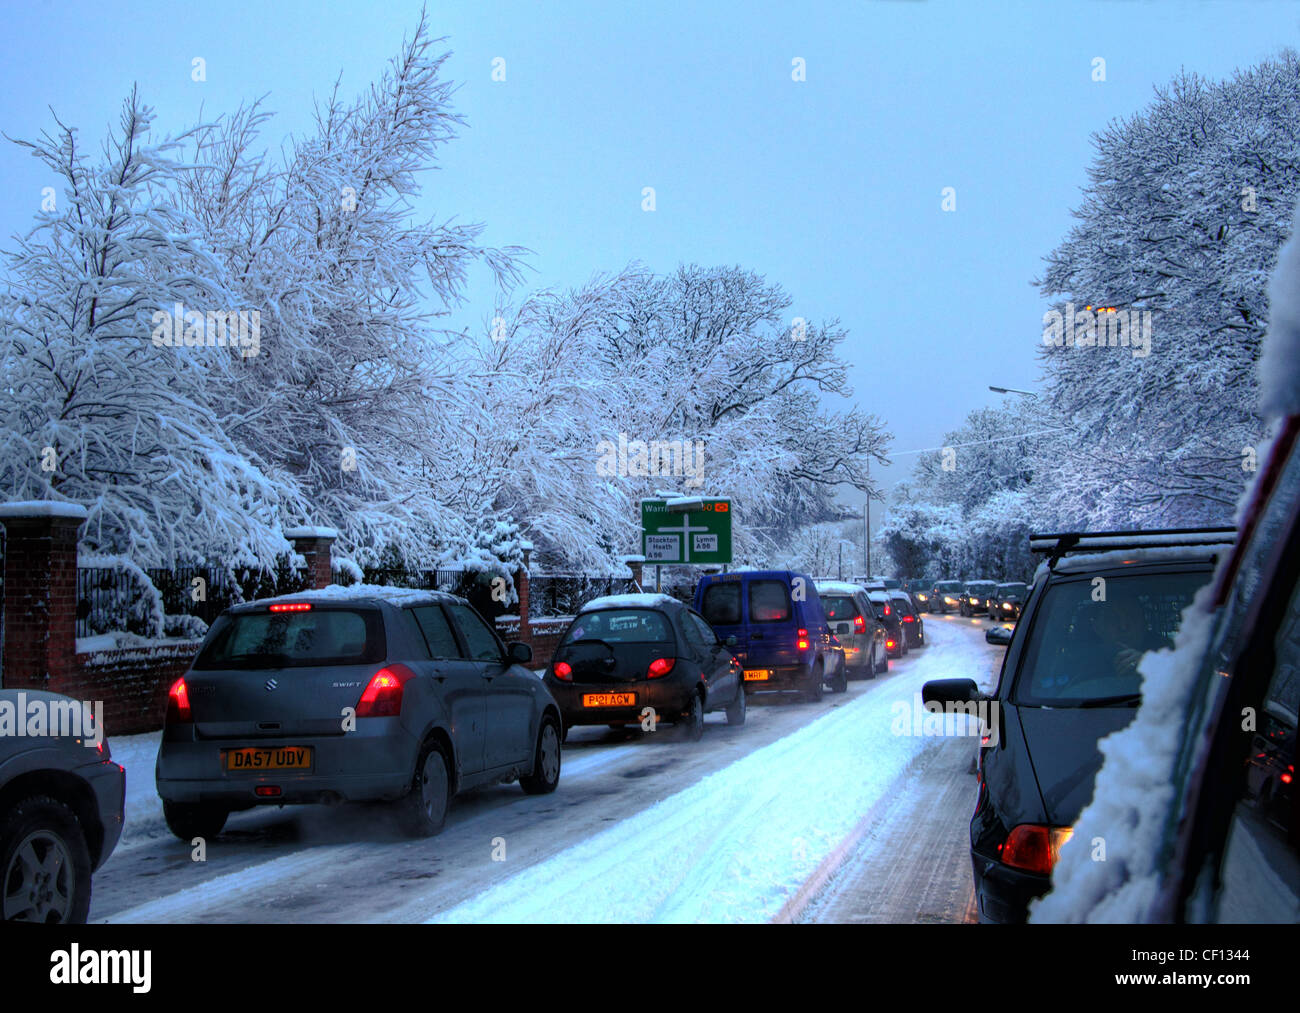 A50 traffic jam on A50 close to Grappenhall, Warrington, Cheshire, England UK Stock Photo